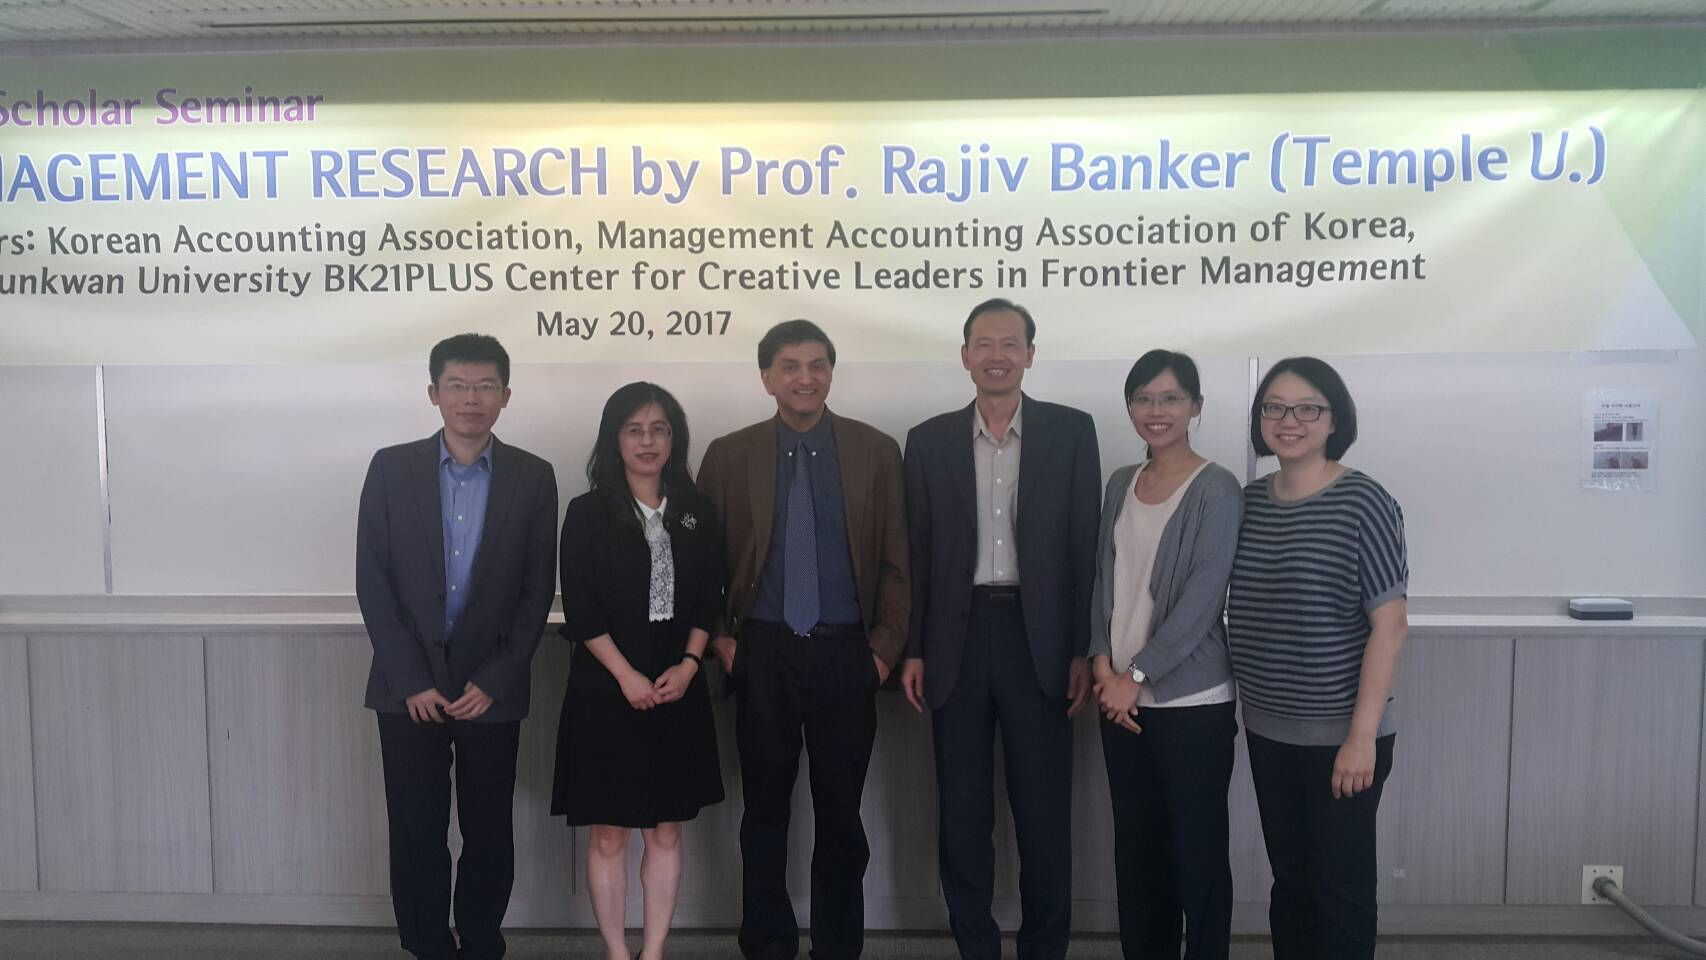 2017.5 Scholar Seminar Management Research by Professor Rajiv Banker